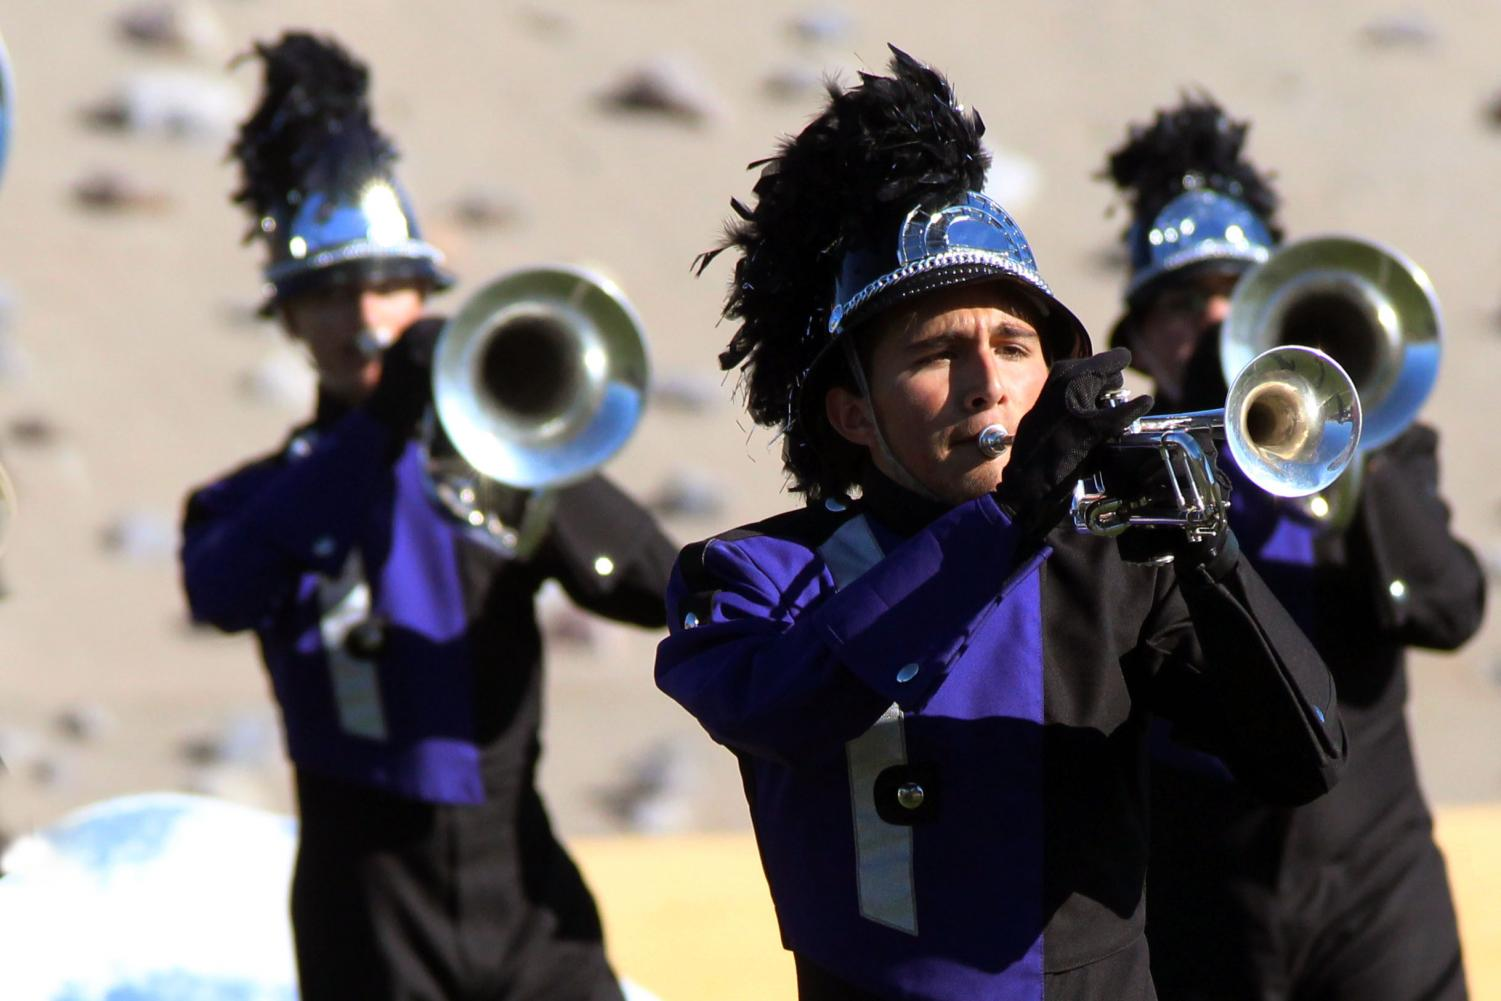 Senior Bret Ramirez marches trumpet, one of many instruments he plays including guitar and piano.